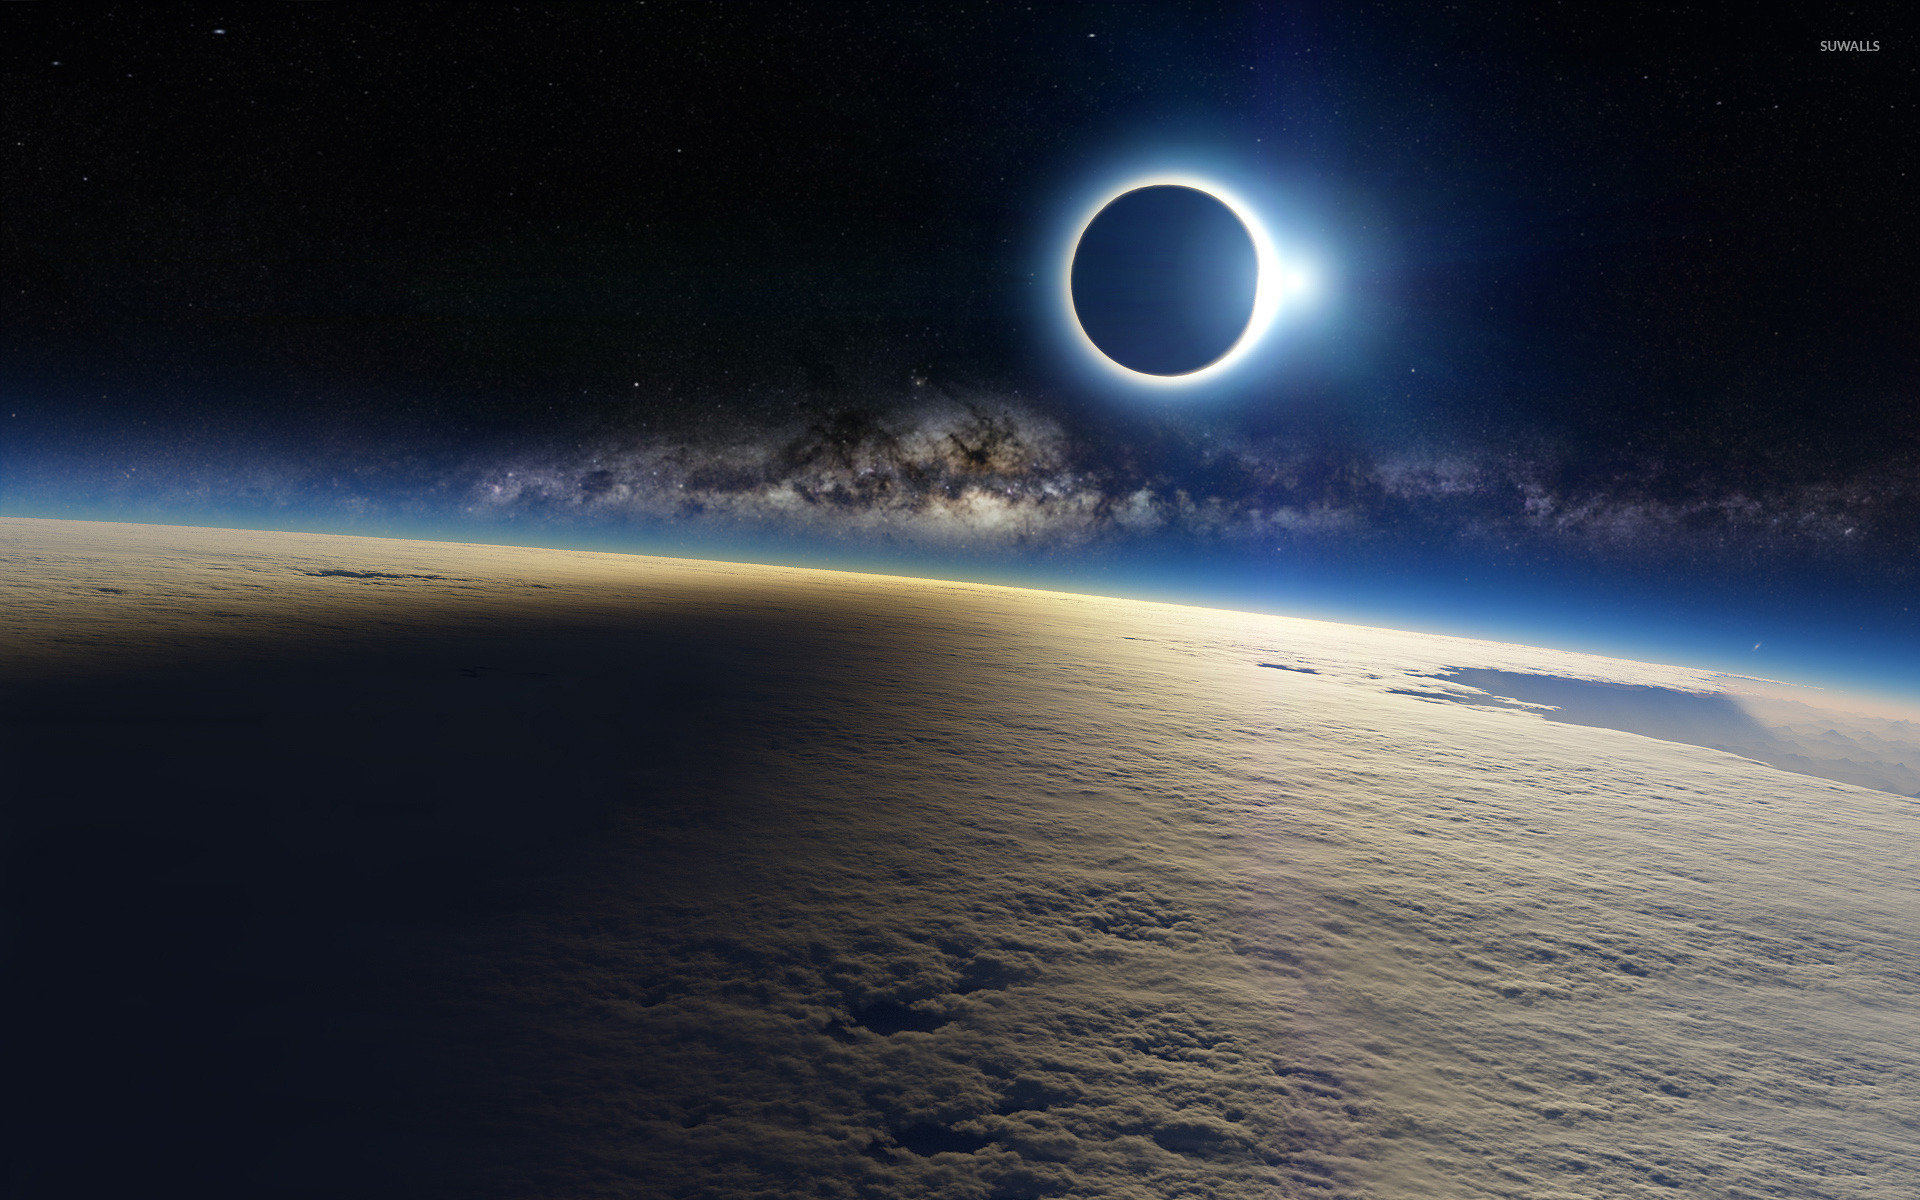 Eclipse Wallpaper Space Wallpapers 14129